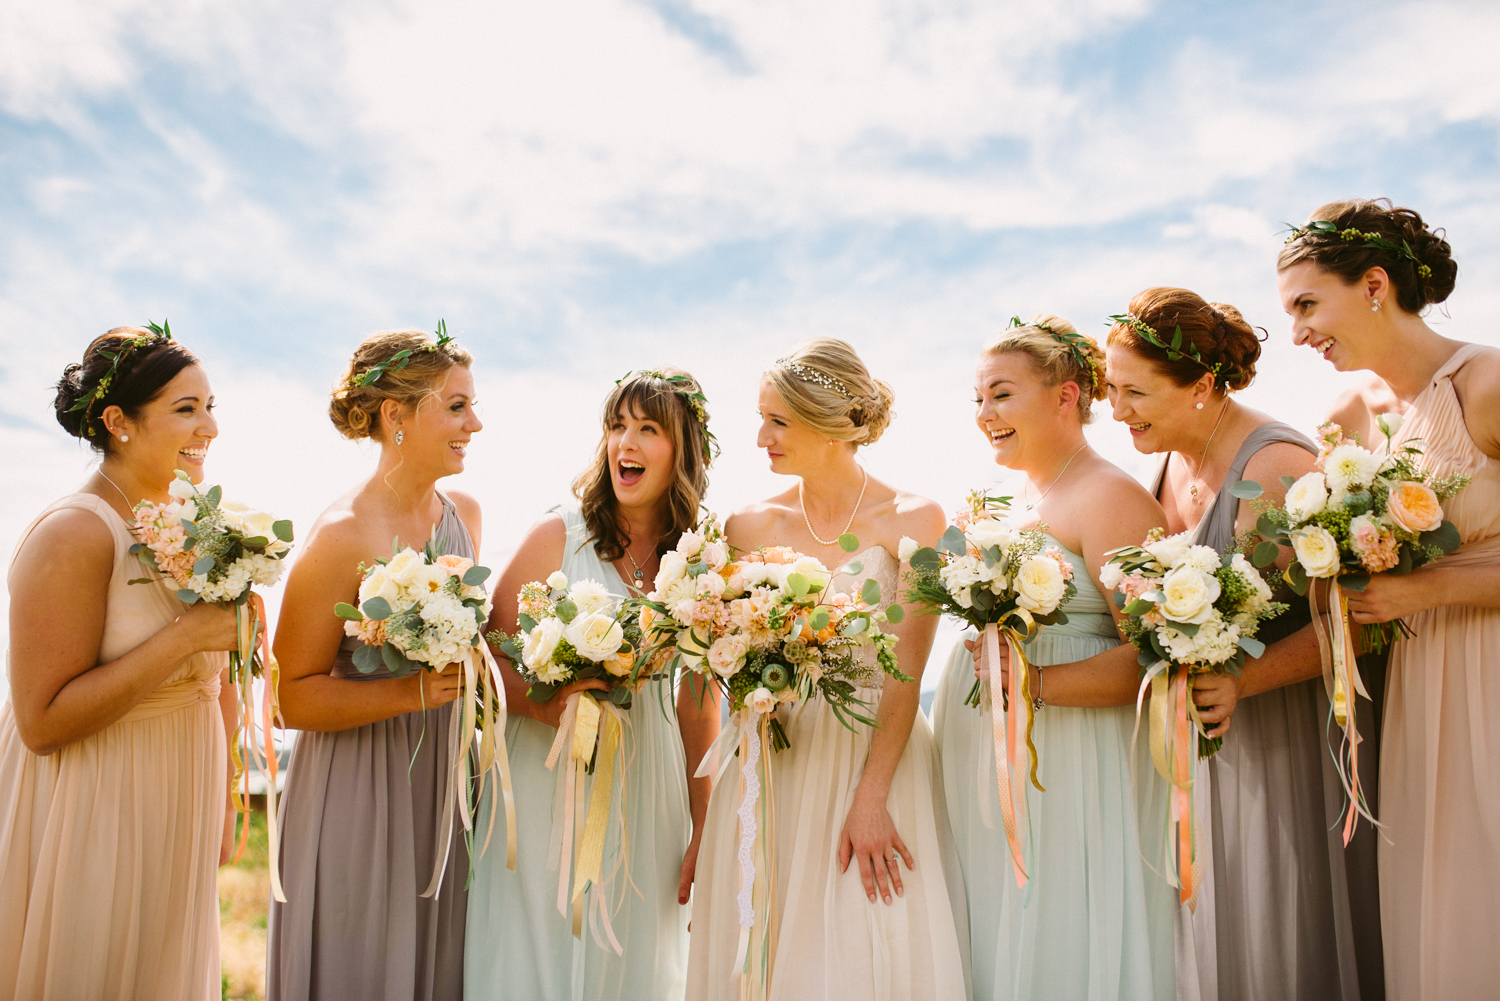 Flowers by Lace and Lilies / Colorado wedding florist - peach, sage, green, white, ivory, blush - natural, organic, romantic, whimsical - Fort Collins, Grand Lake, Destination, Travel - mountain wedding, hanging ribbon, bridesmaid, maid of honor, bridal bouquet, hair flowers, floral crown, flower halo